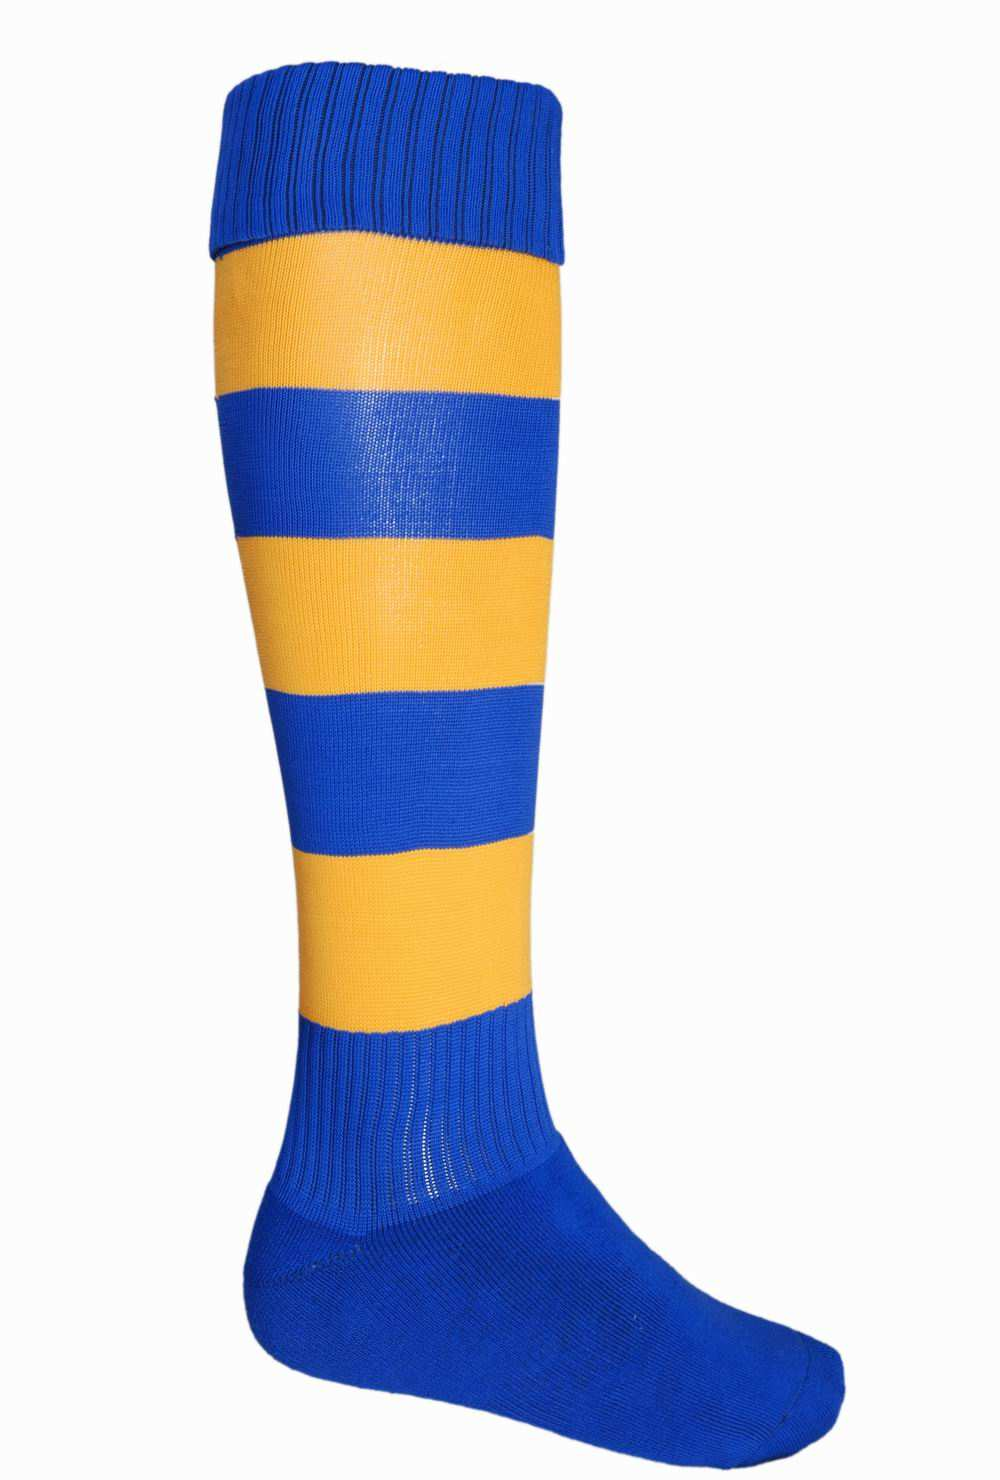 socks/small royal gold footy socks